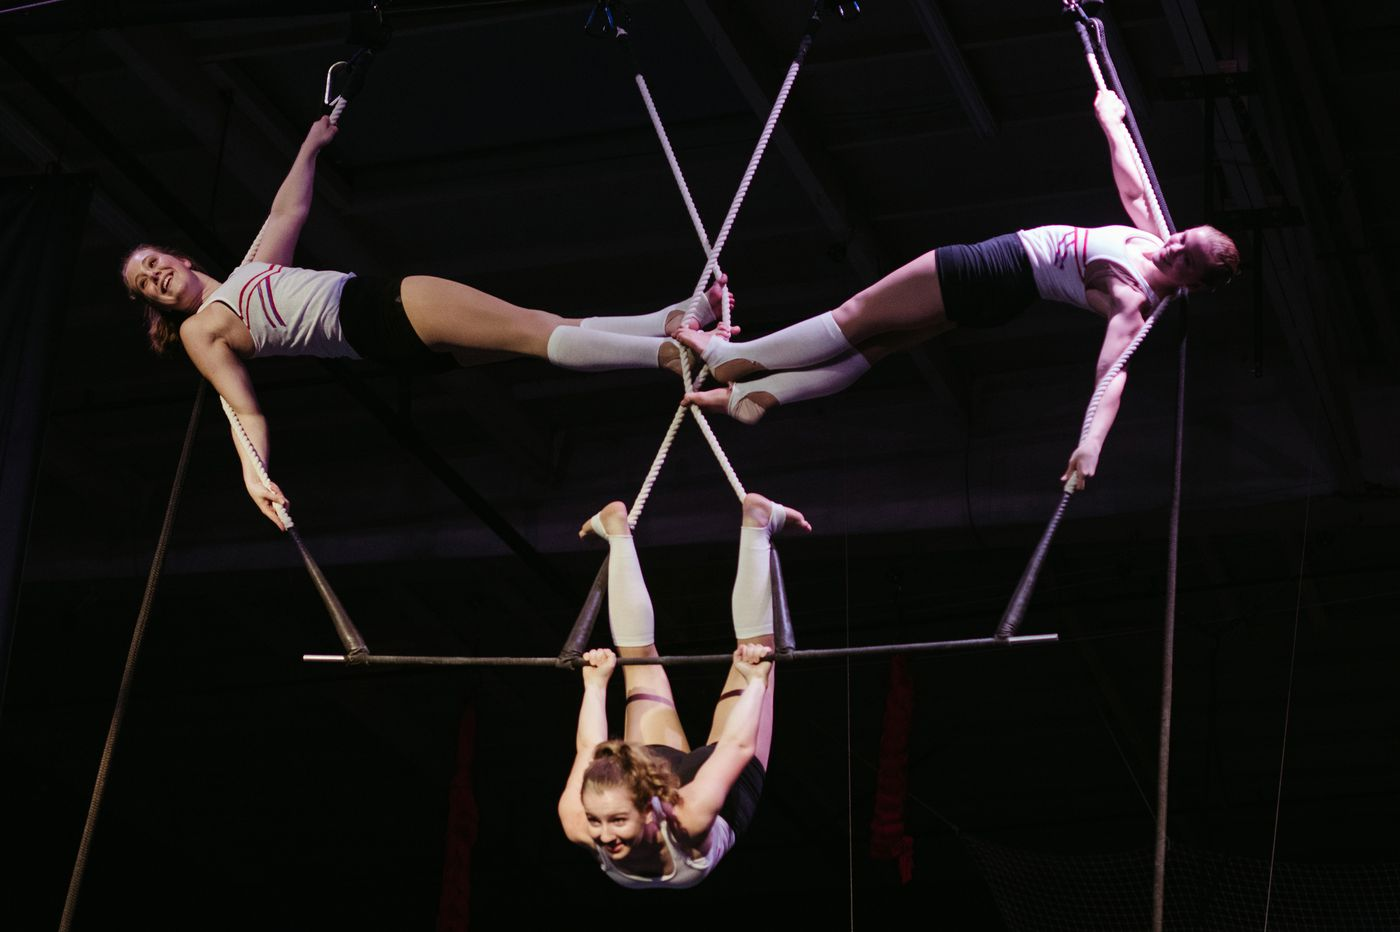 Personal Journey: Running away to the circus